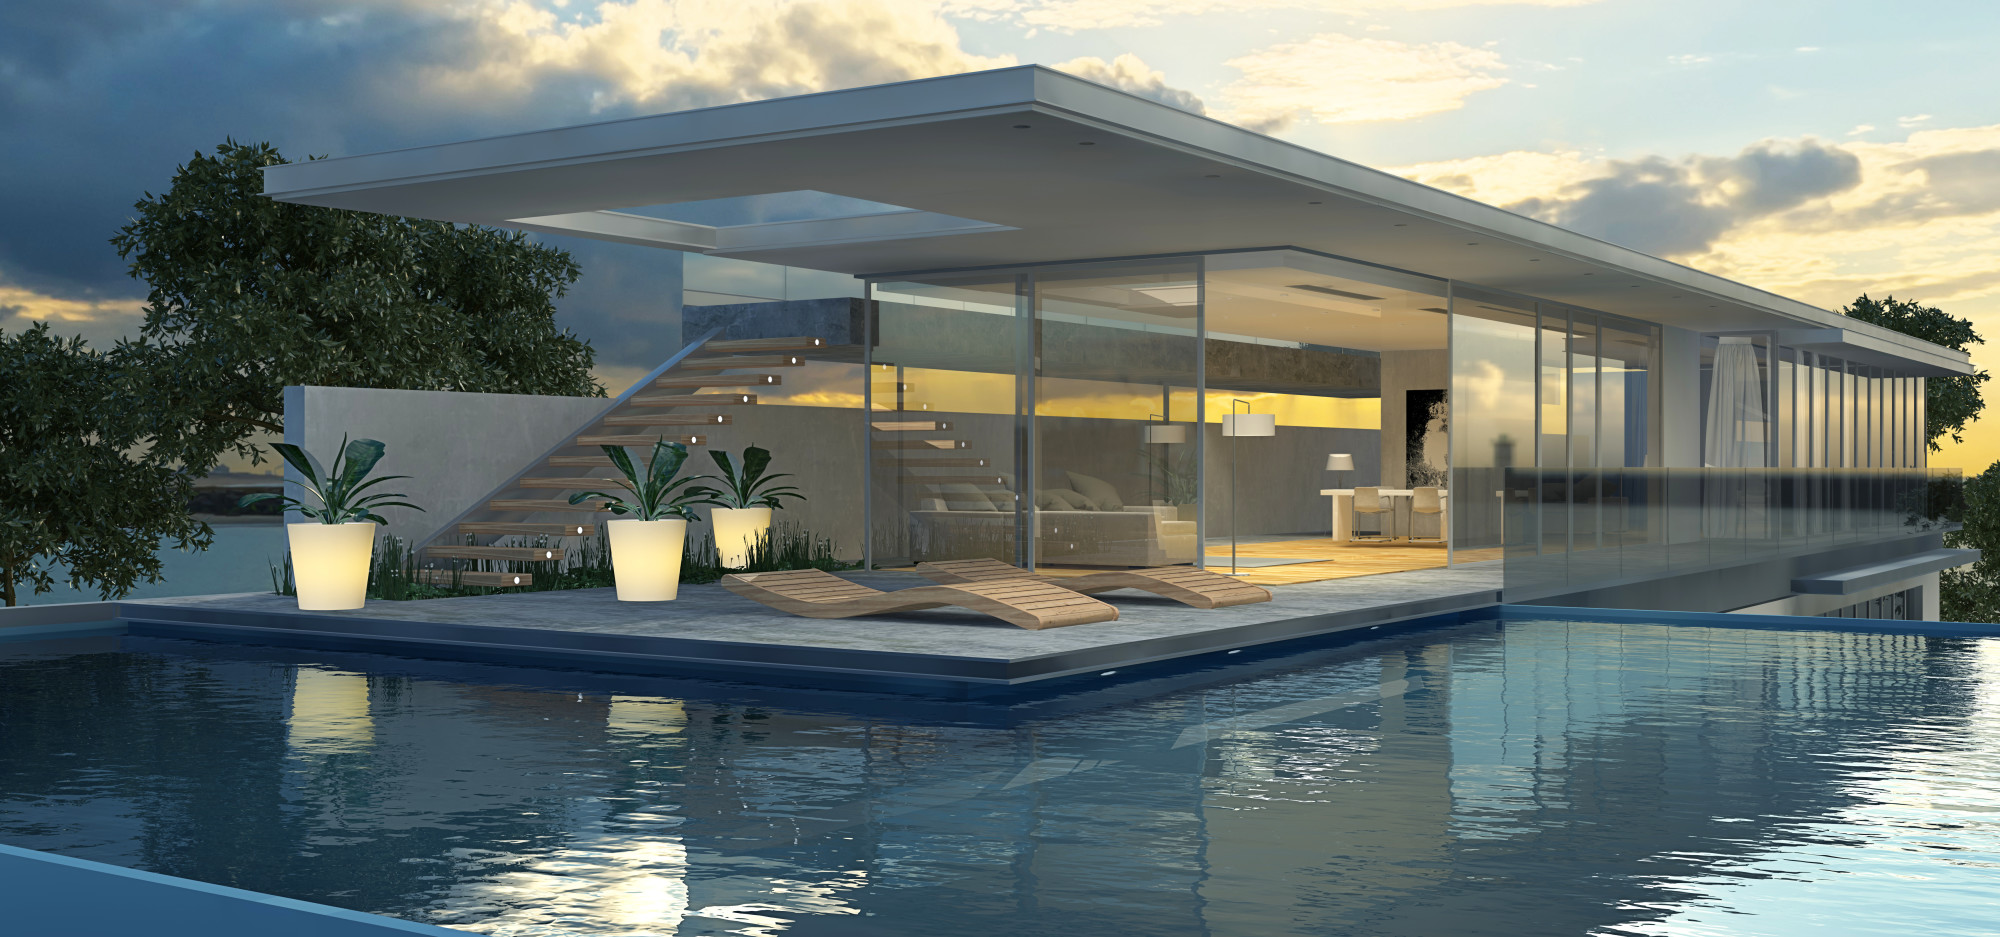 Stunning Pool and Spa Design Ideas to Upgrade Your Home and Yard